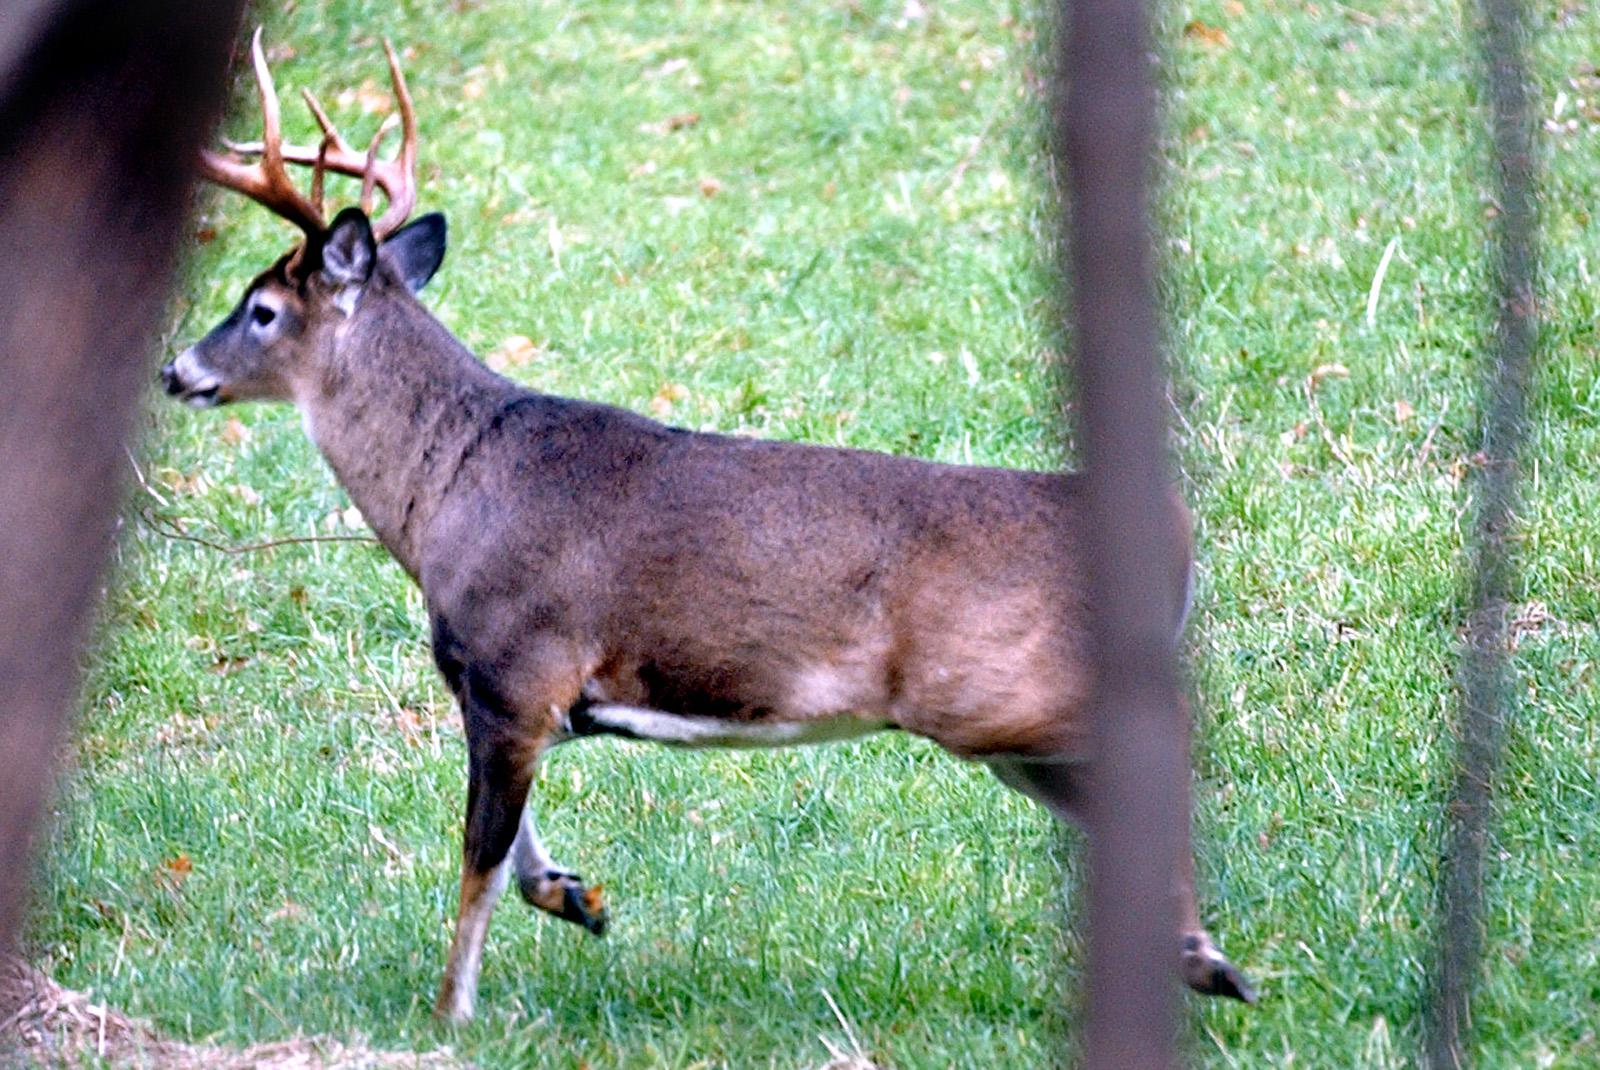 Monrore official issues deer tips